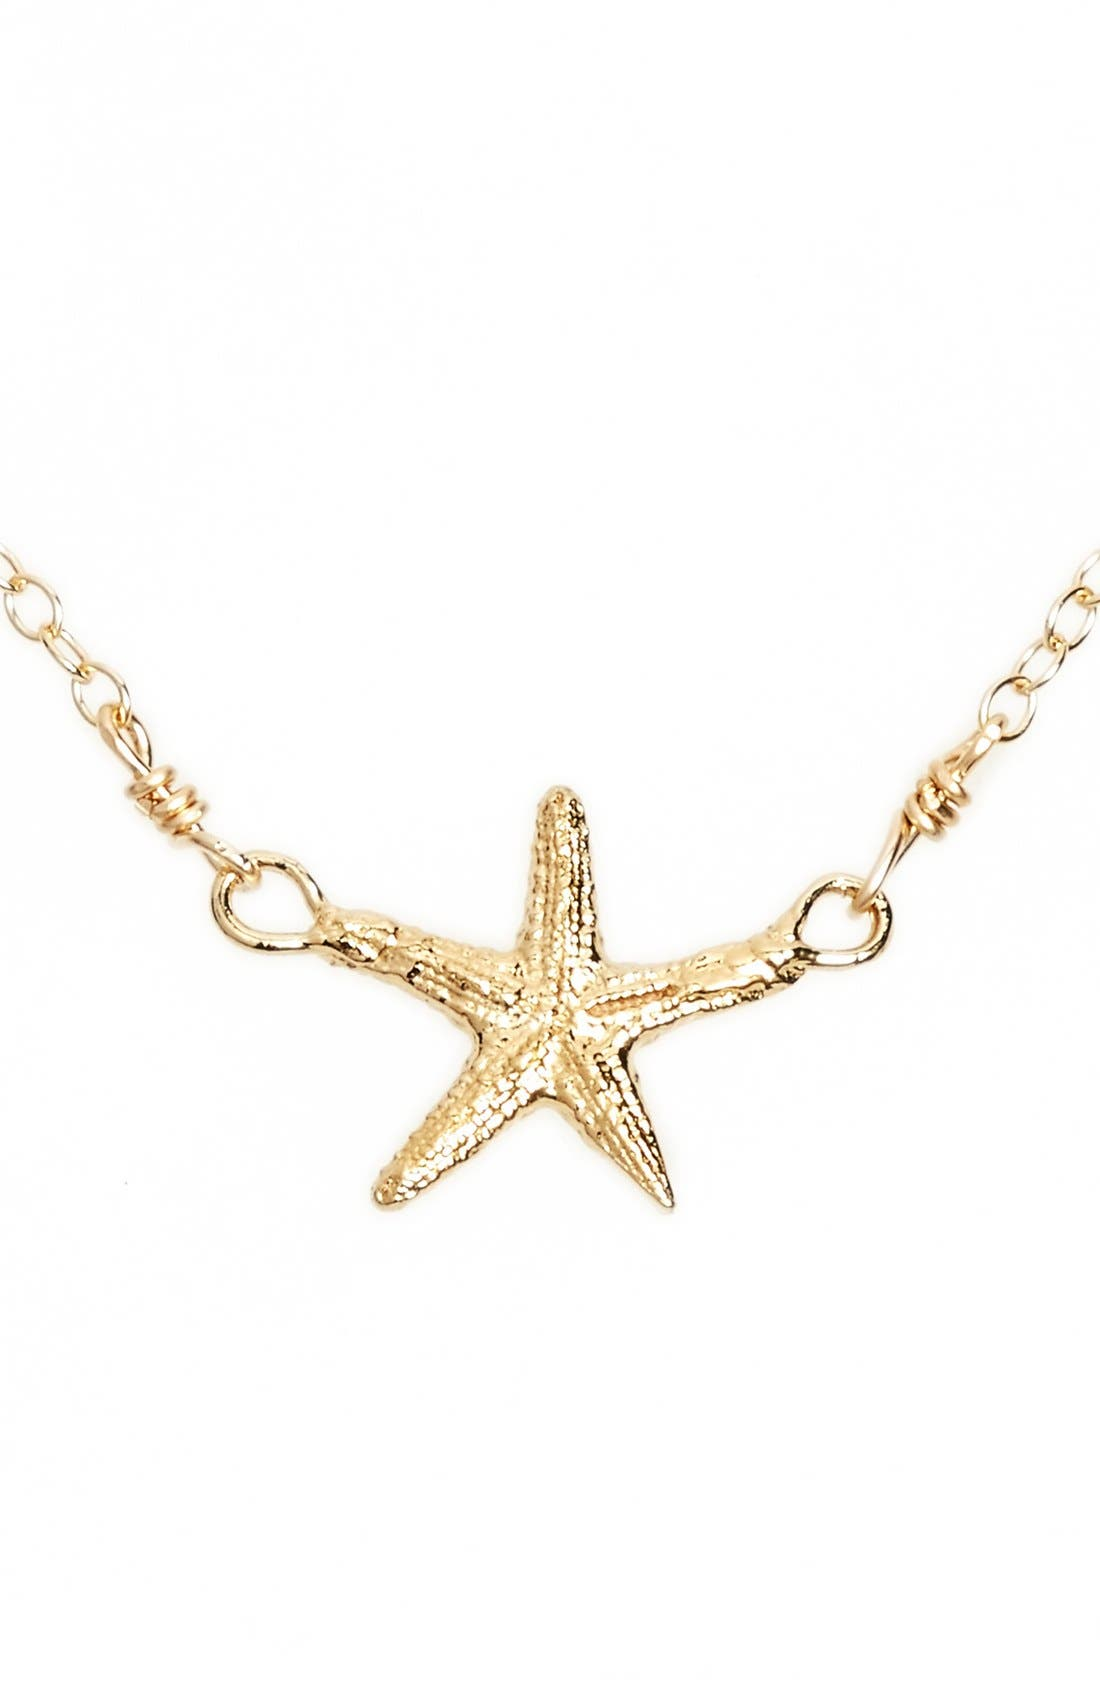 Main Image - ki-ele 'Manini' Starfish Pendant Necklace